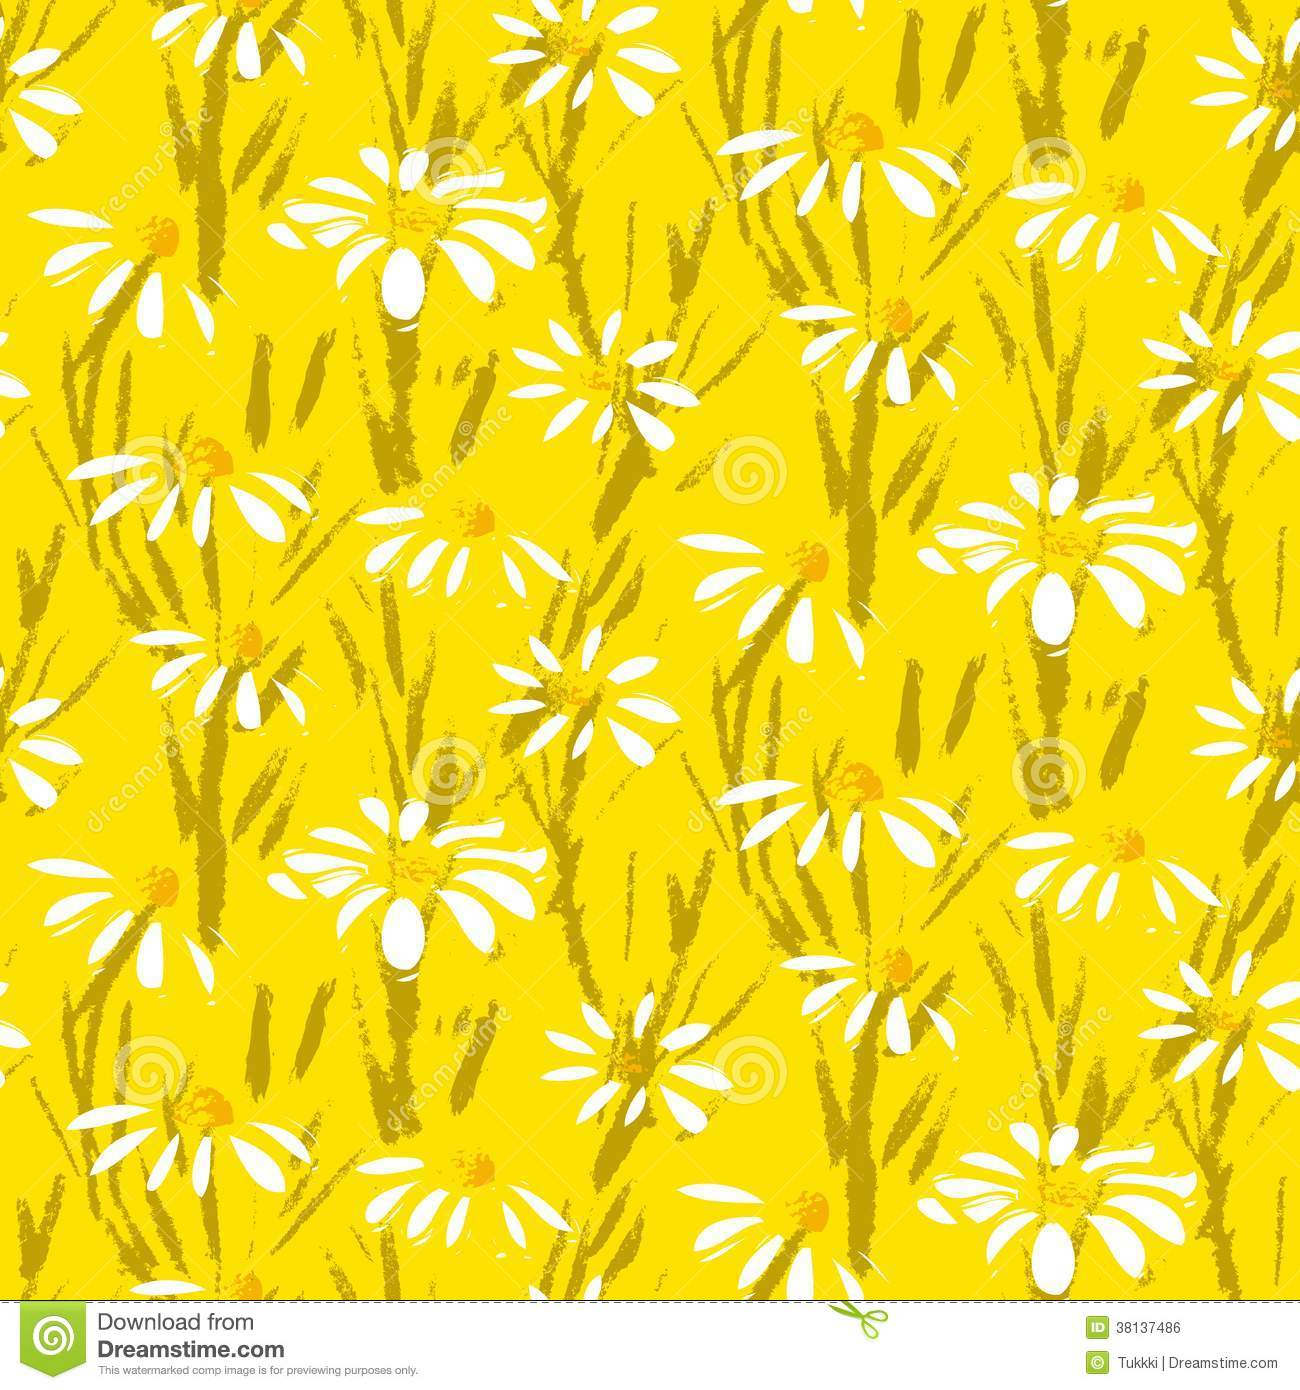 Tumblr 36 tumblr yellow flowers tumblr yellow flowers tumblr flowers yellow viewing gallery daisy print background mightylinksfo